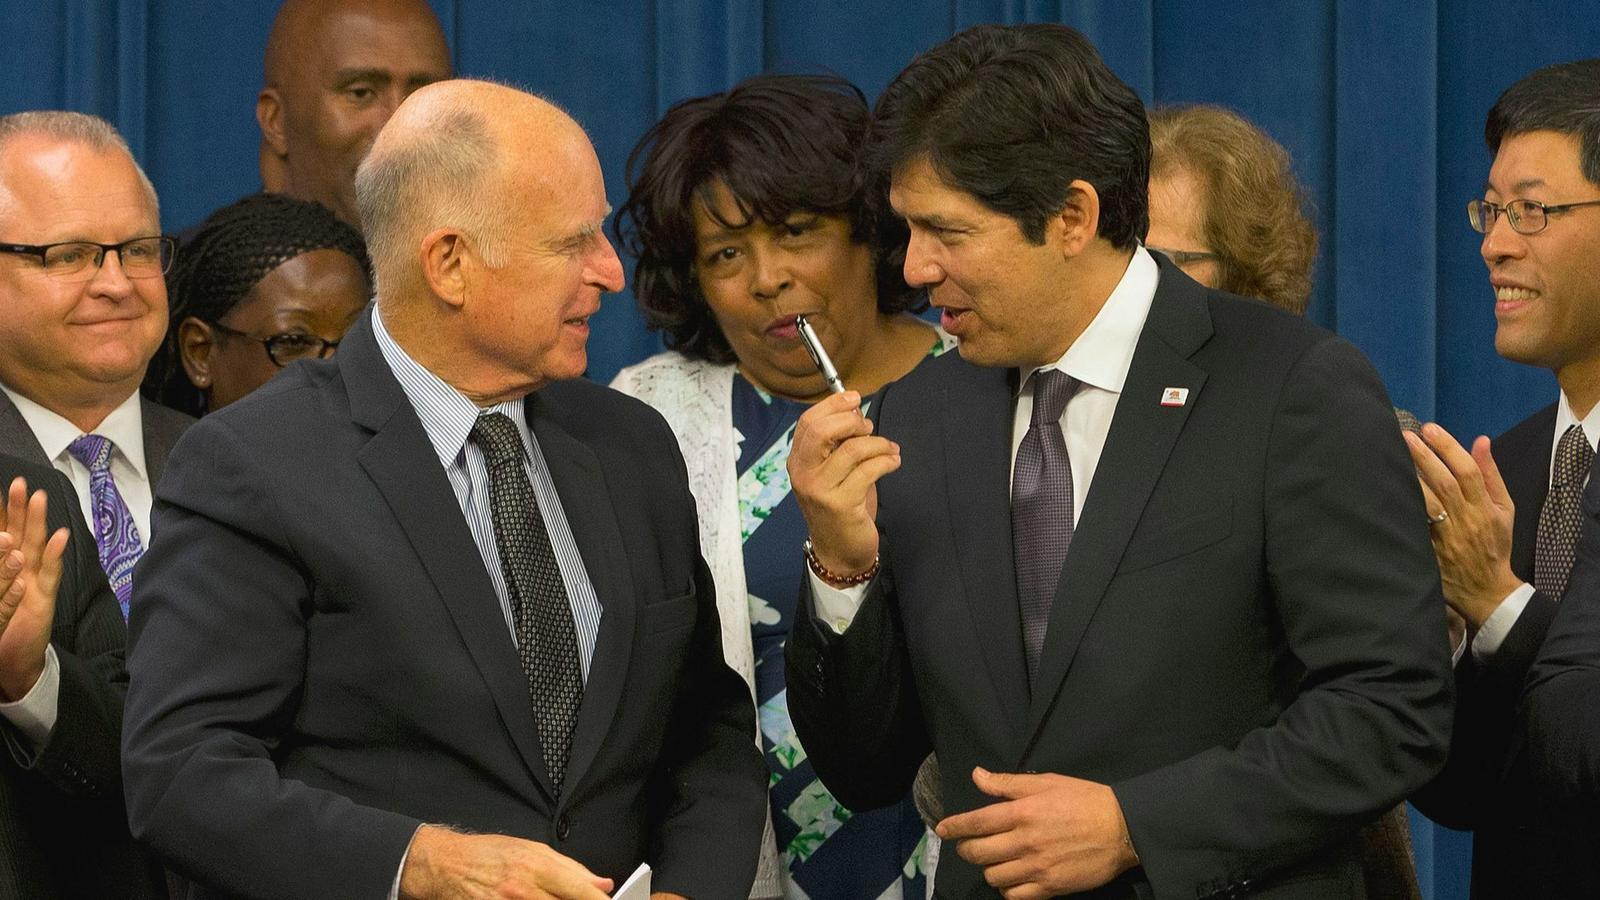 After long negotiations Gov. Jerry Brown and state Senate leader Kevin de León came to a compromise on the